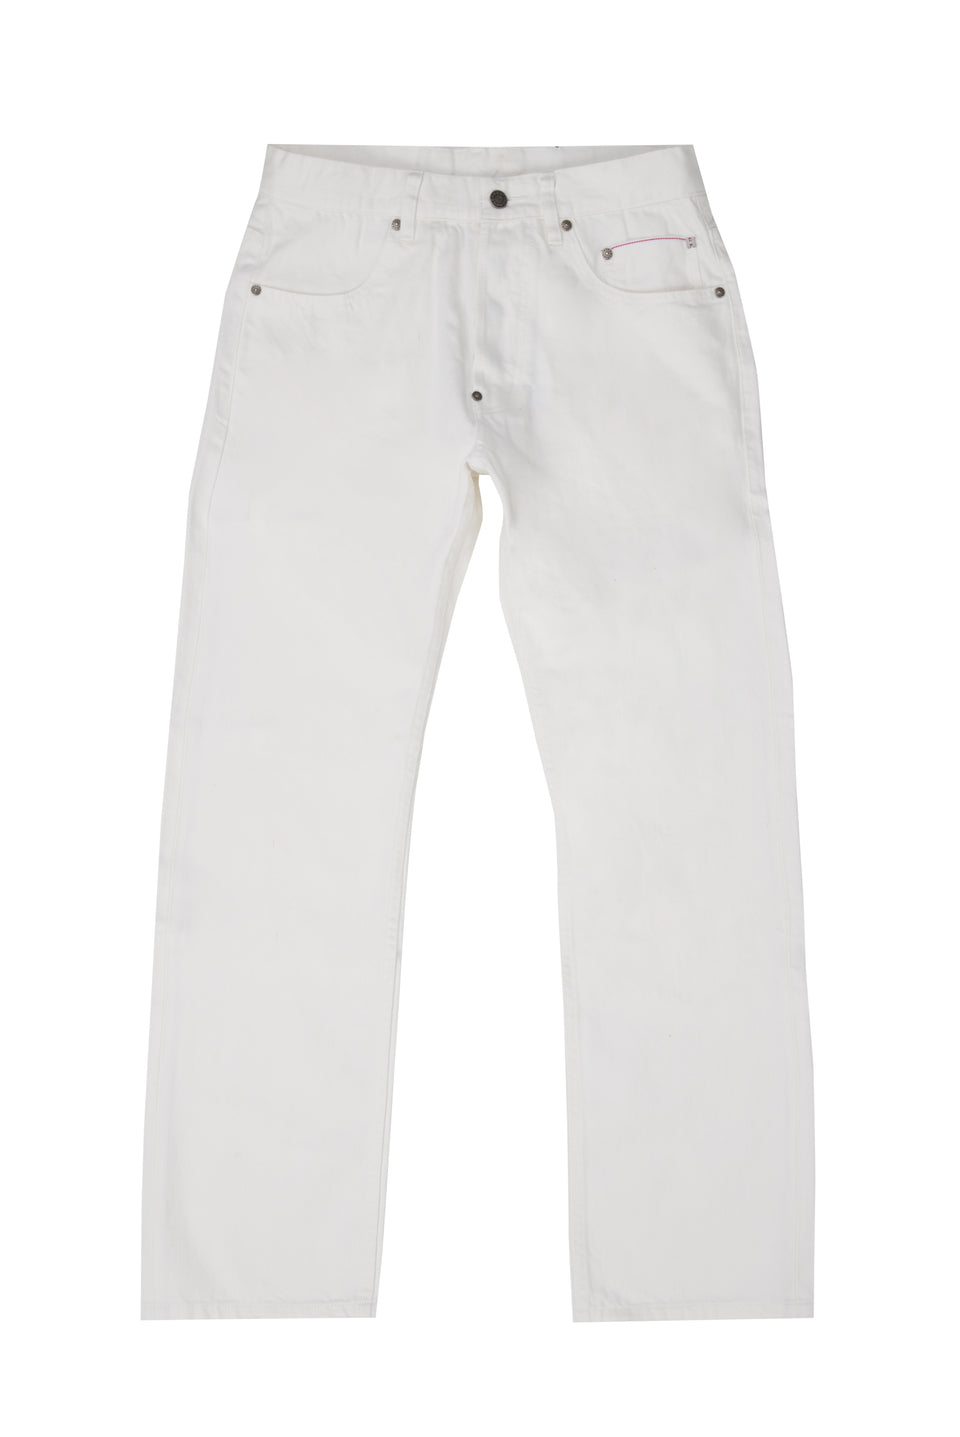 White Out Denim (Relaxed)